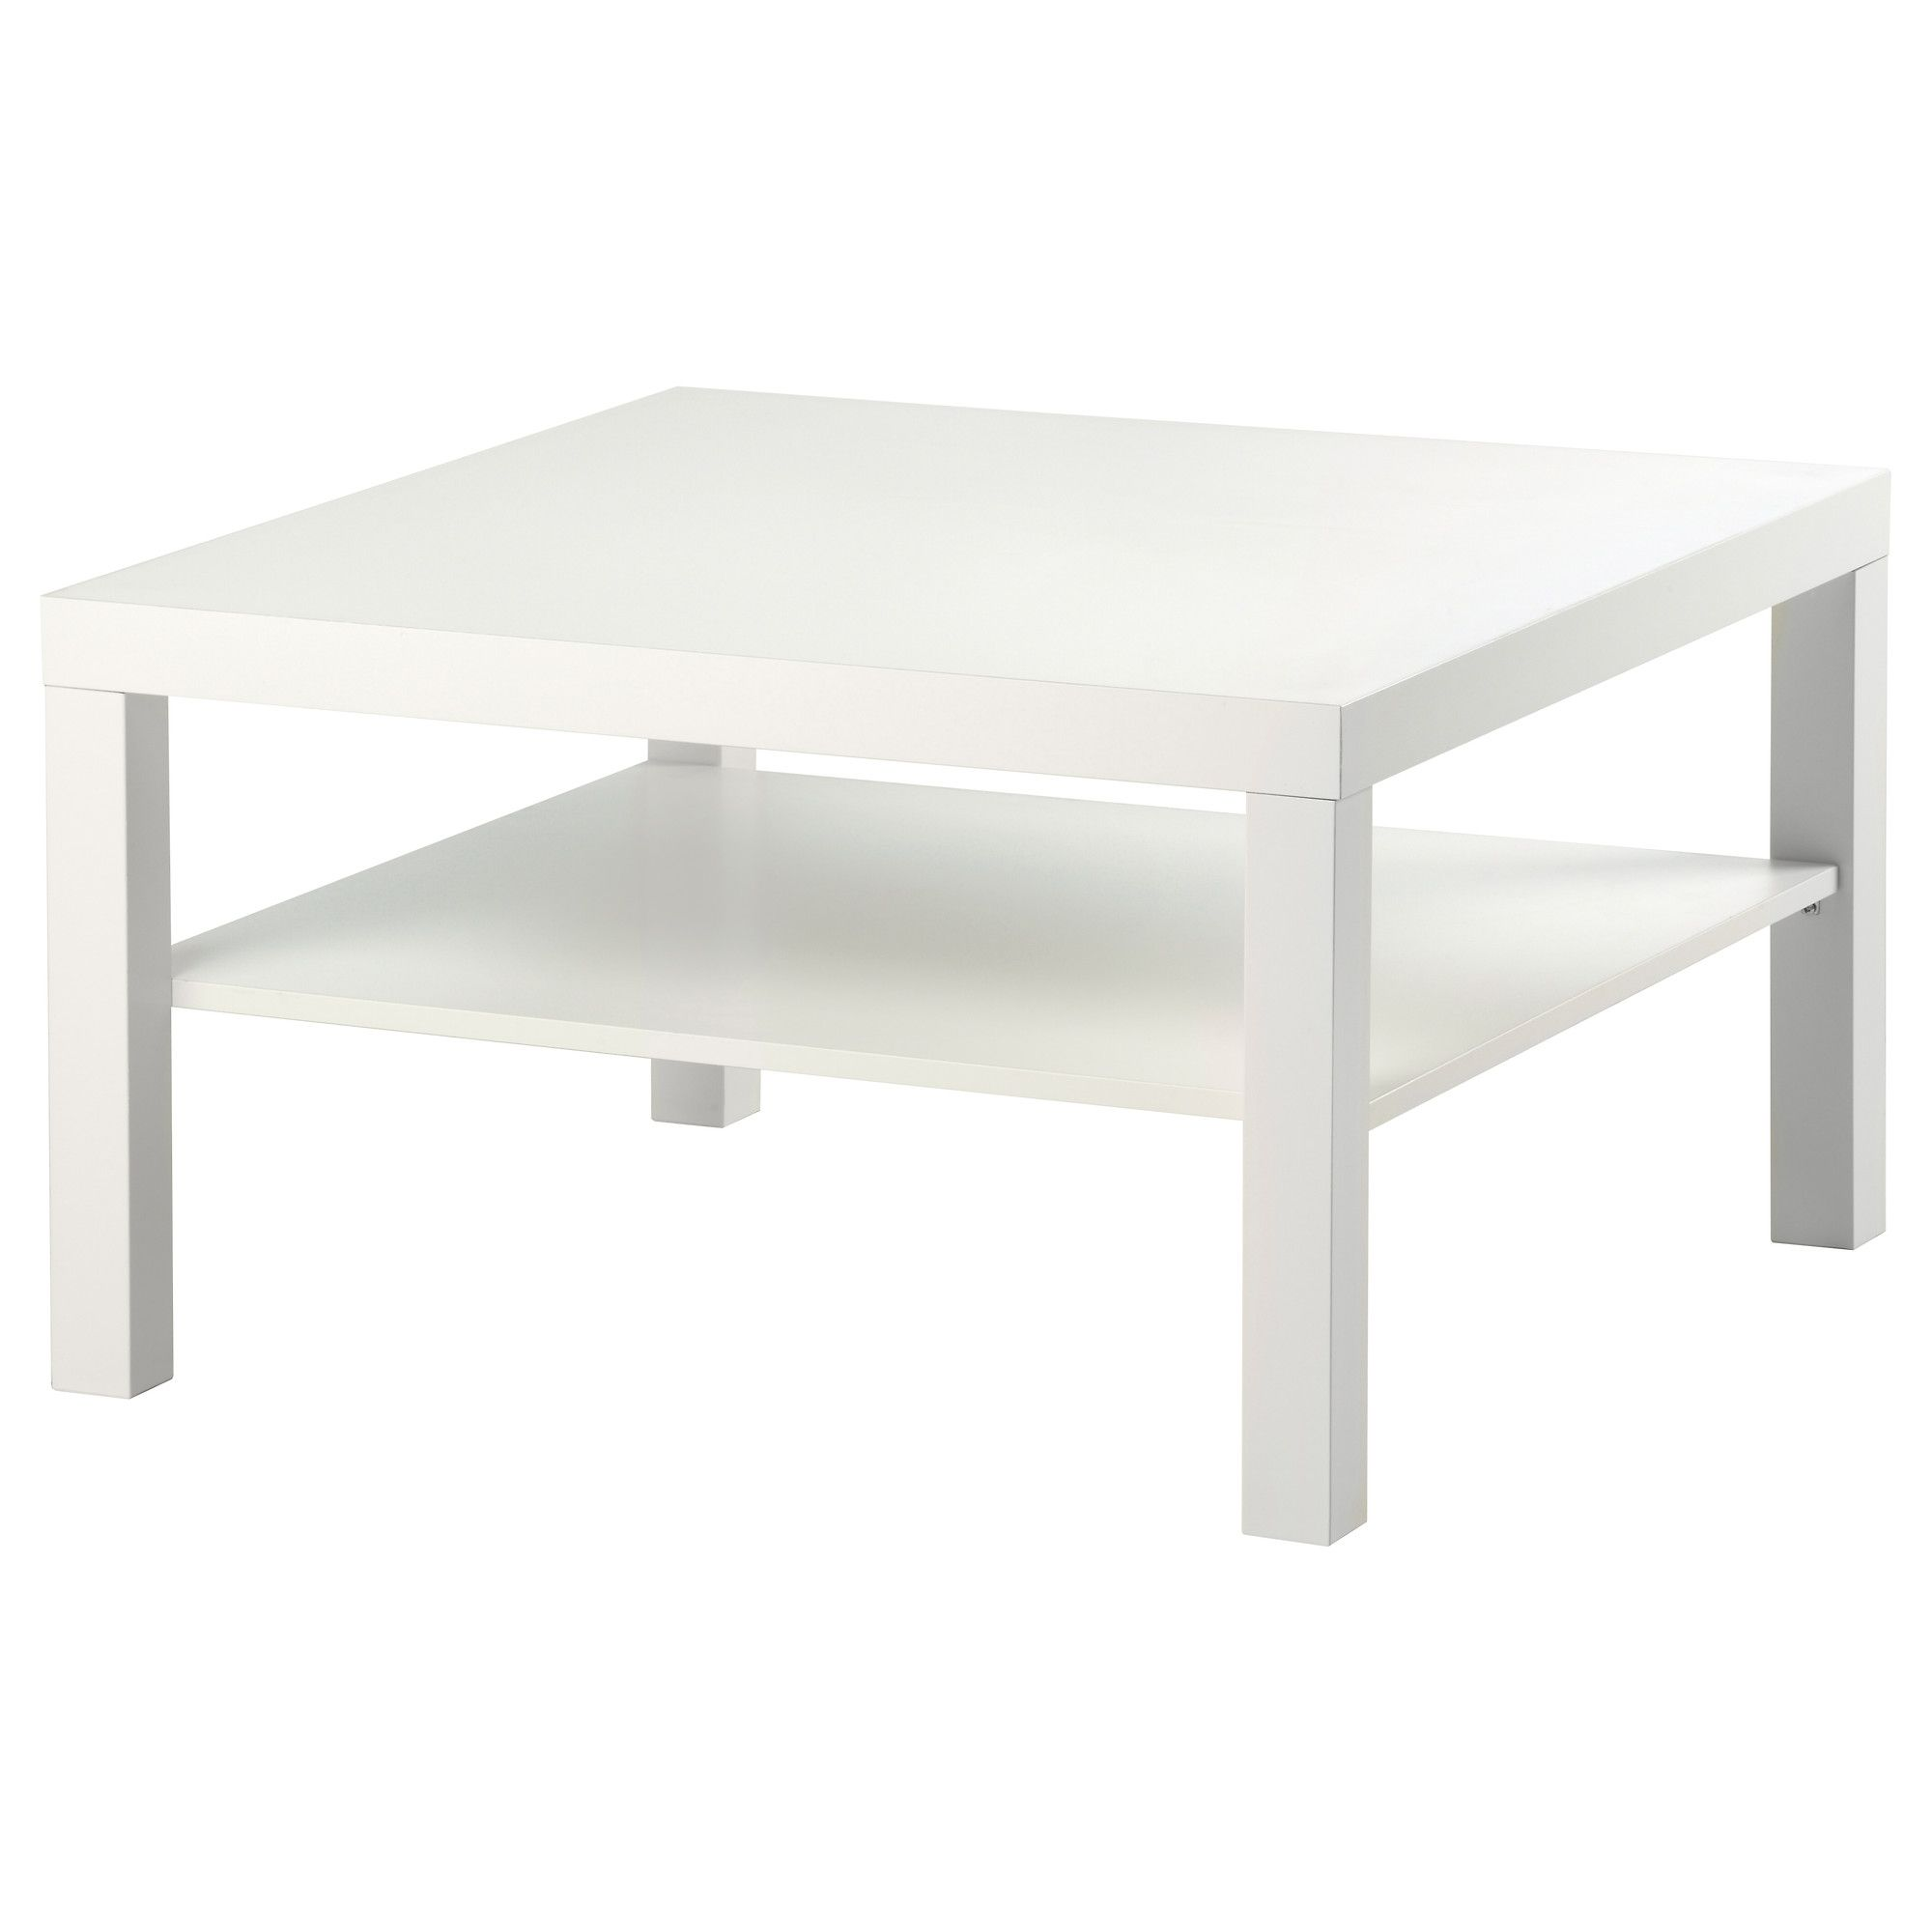 - Ikea Hemnes Coffee Table White - Coffee Tables Come In Sizes